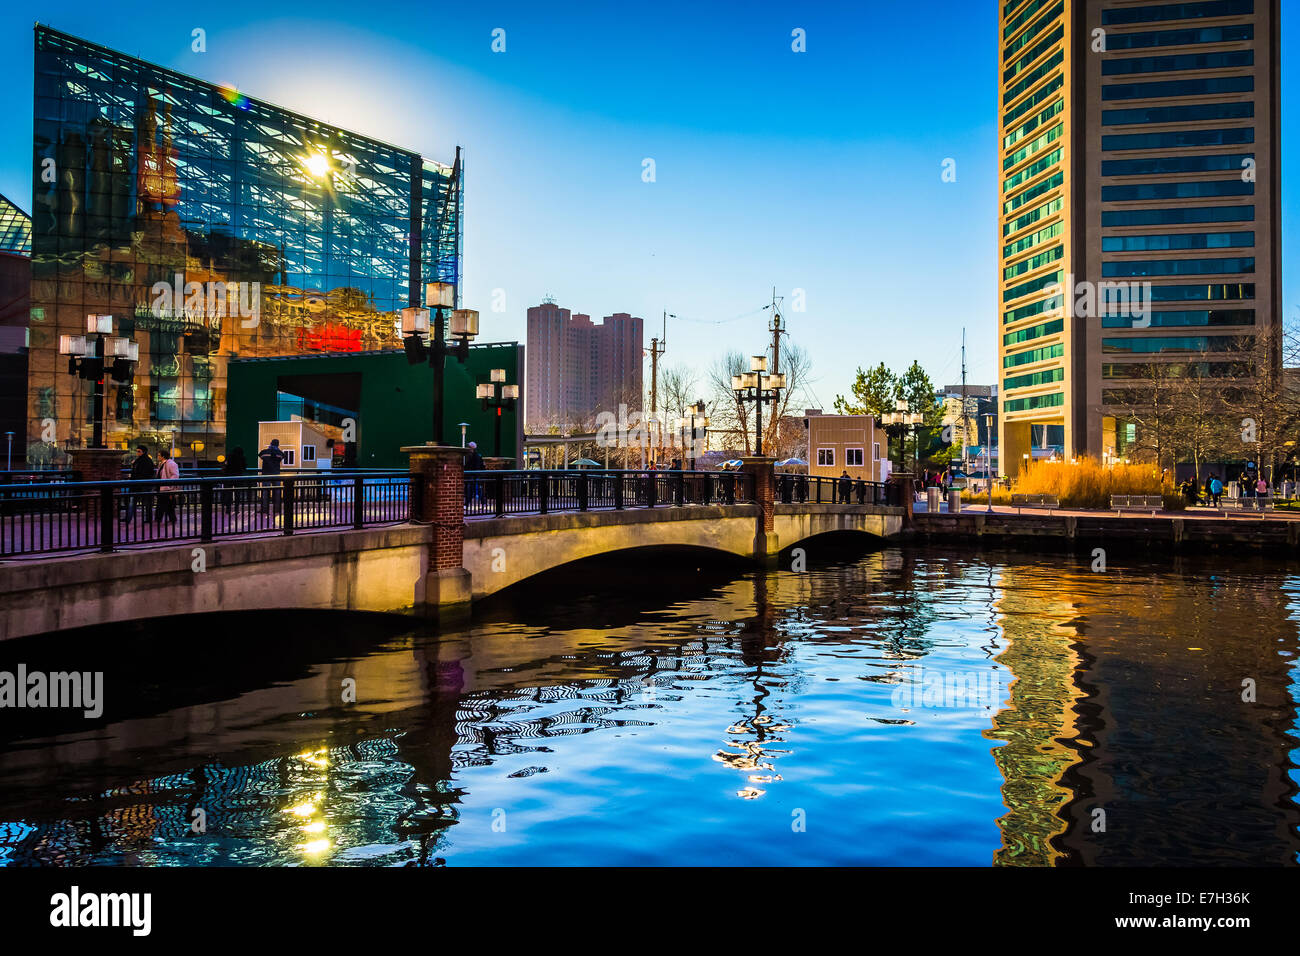 The National Aquarium and World Trade Center at the Inner Harbor in Baltimore, Maryland. - Stock Image